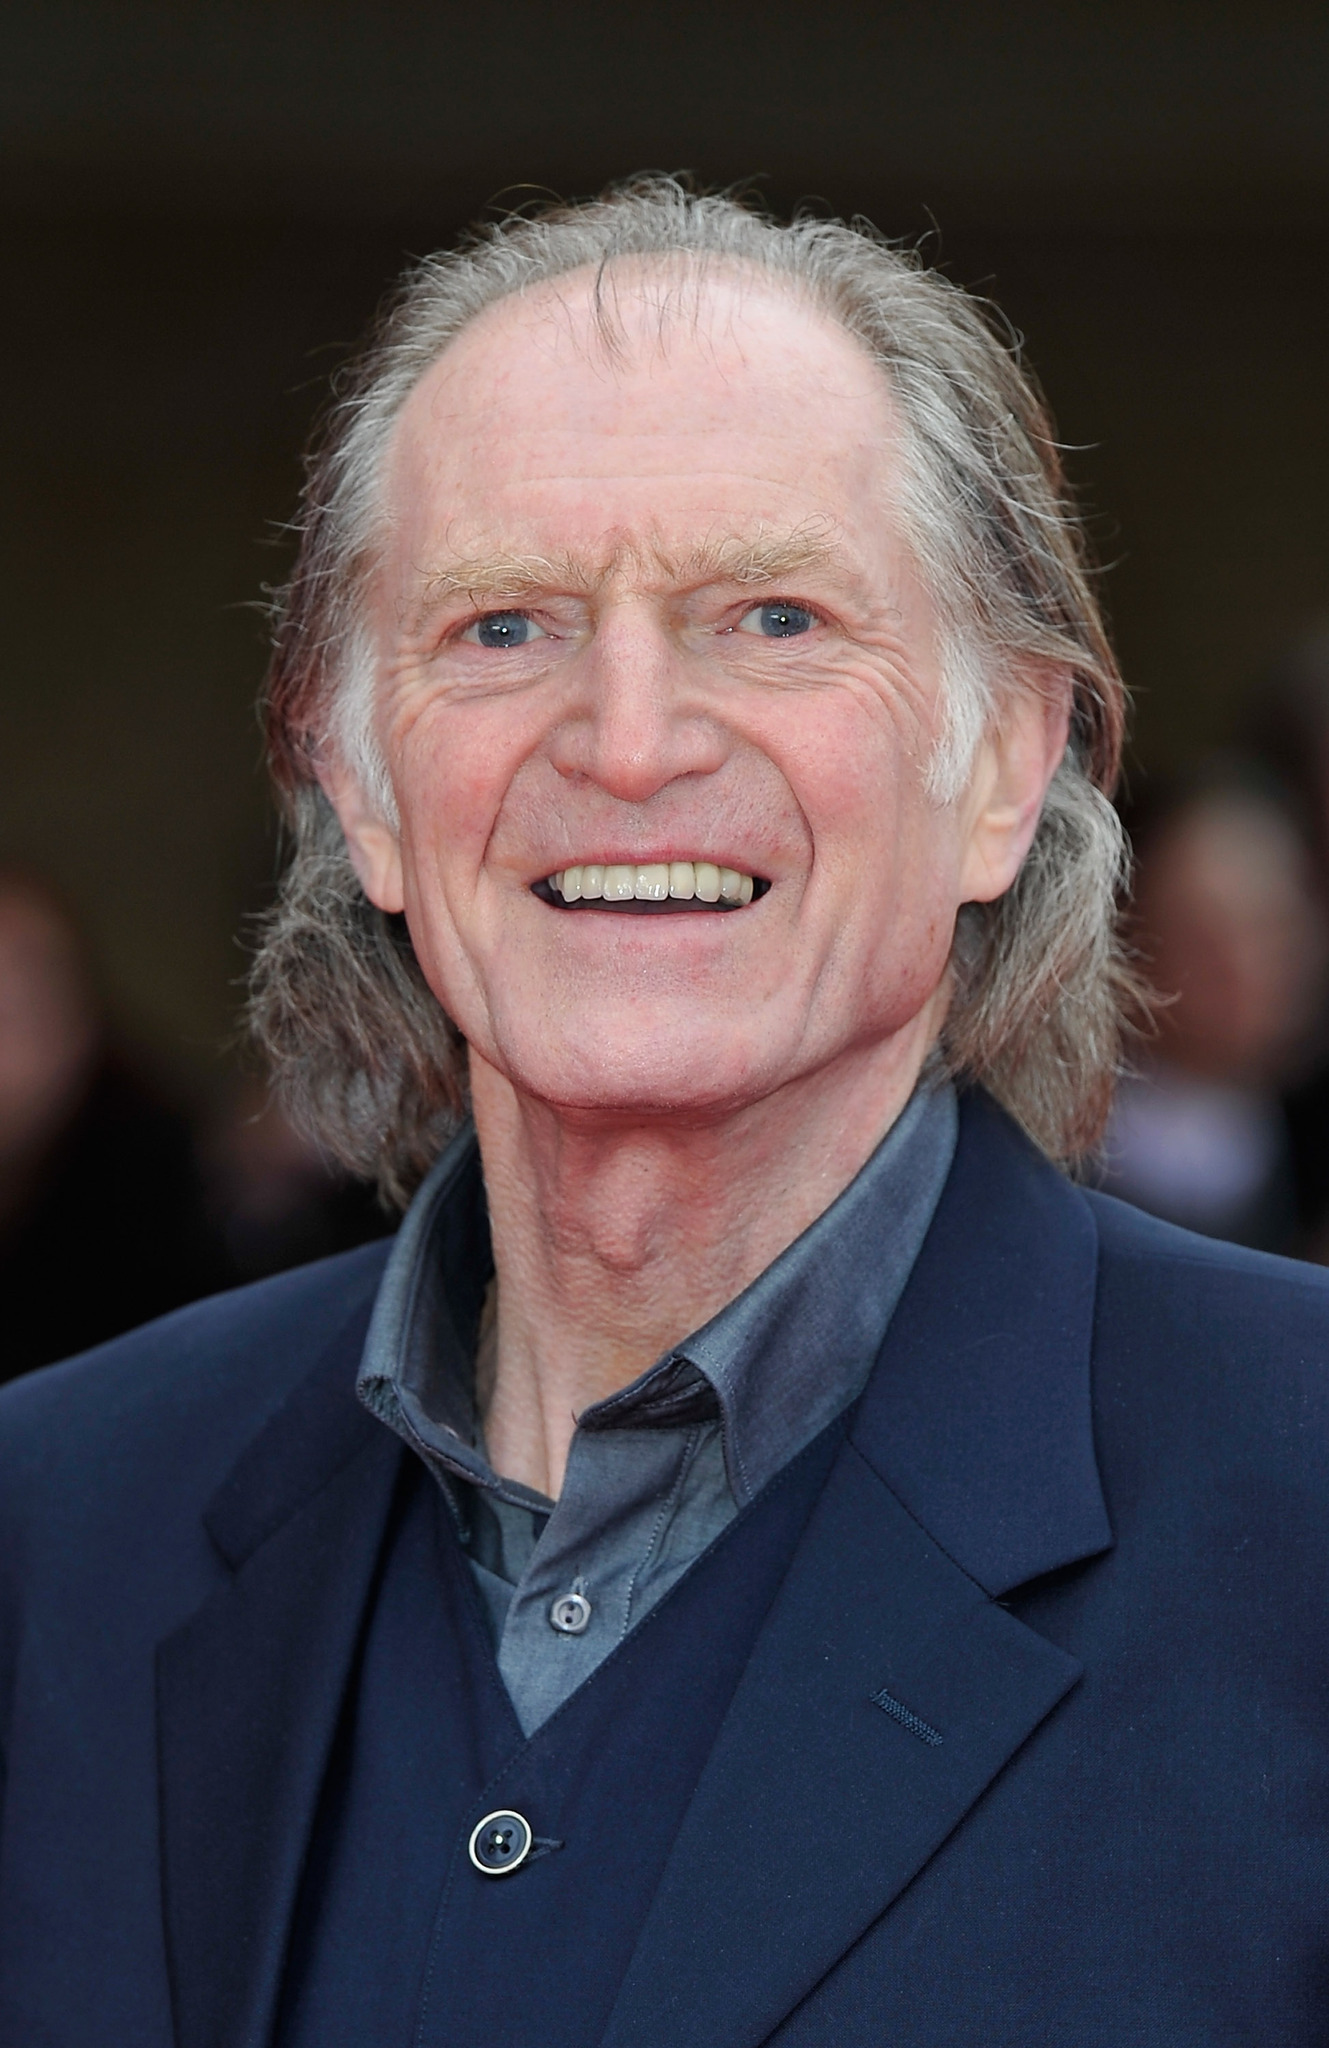 david bradley hard time moving on lyricsdavid bradley ninja, david bradley games, david bradley kes, david bradley wme, david bradley american actor, david bradley agent, david bradley hard time moving on lyrics, david bradley usa, david bradley hot fuzz, david bradley (iv), david bradley desperate housewives, david bradley actor, david bradley young, david bradley american ninja, david bradley doctor who, david bradley fan mail, david bradley interview, david bradley martial artist, david bradley wiki, david bradley wizardry